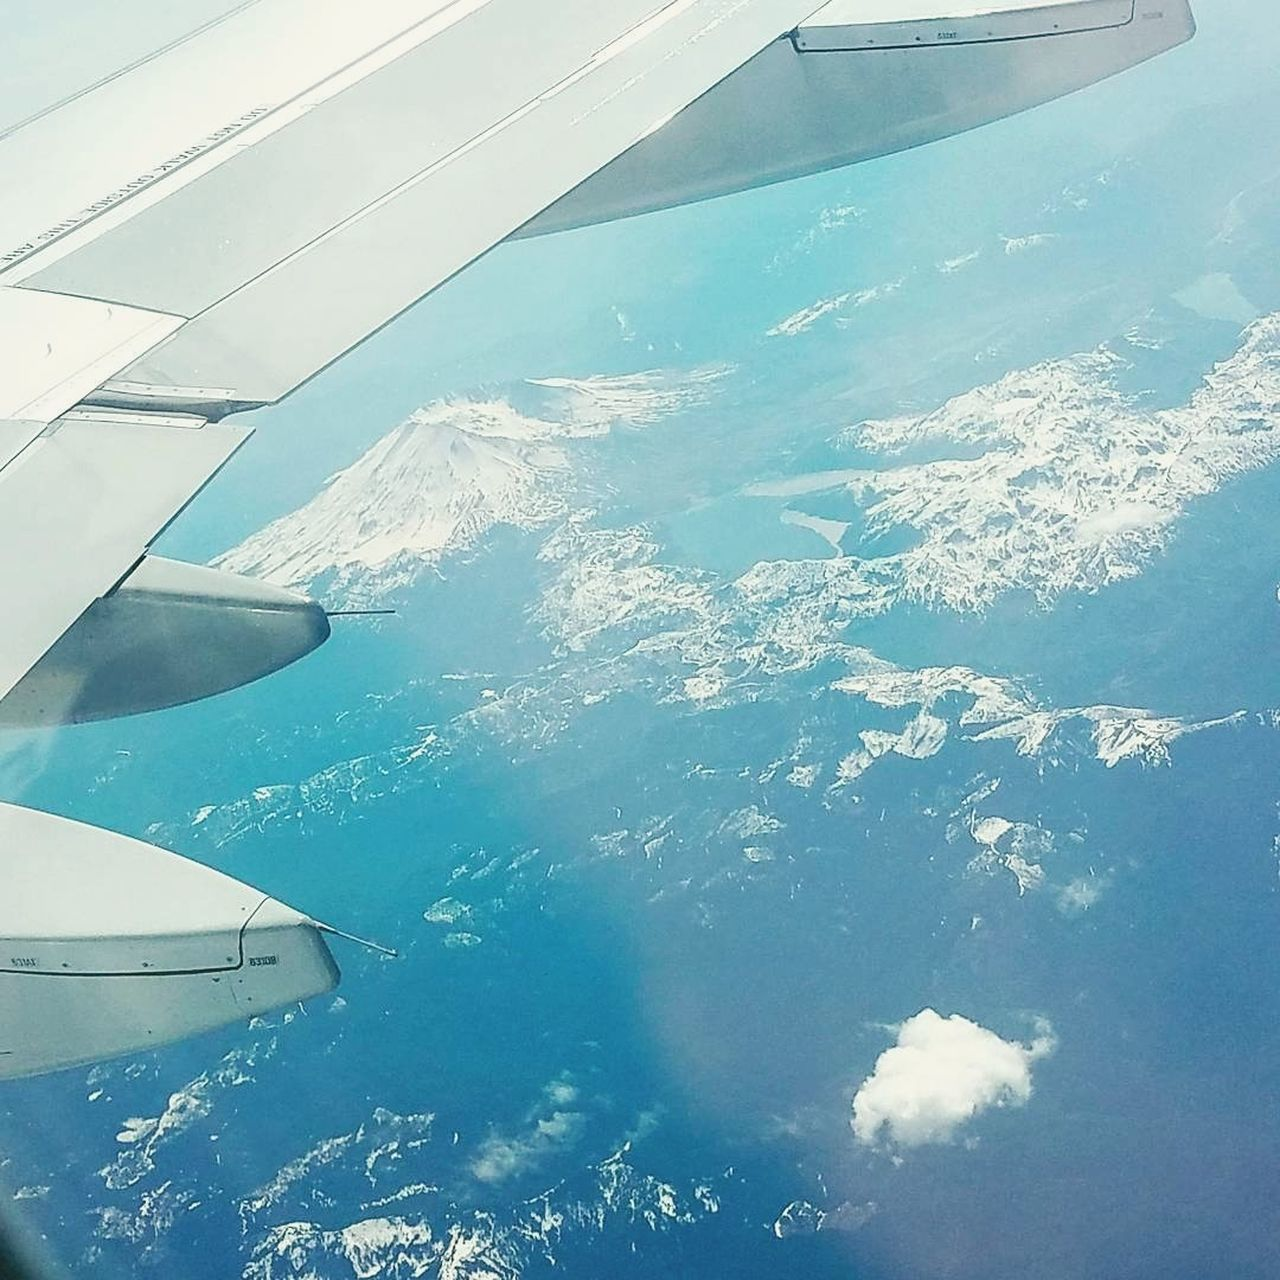 aerial view, airplane, beauty in nature, nature, airplane wing, water, day, no people, travel, journey, scenics, outdoors, air vehicle, tranquil scene, transportation, tranquility, landscape, sky, blue, cold temperature, sea, flying, snow, mountain, view into land